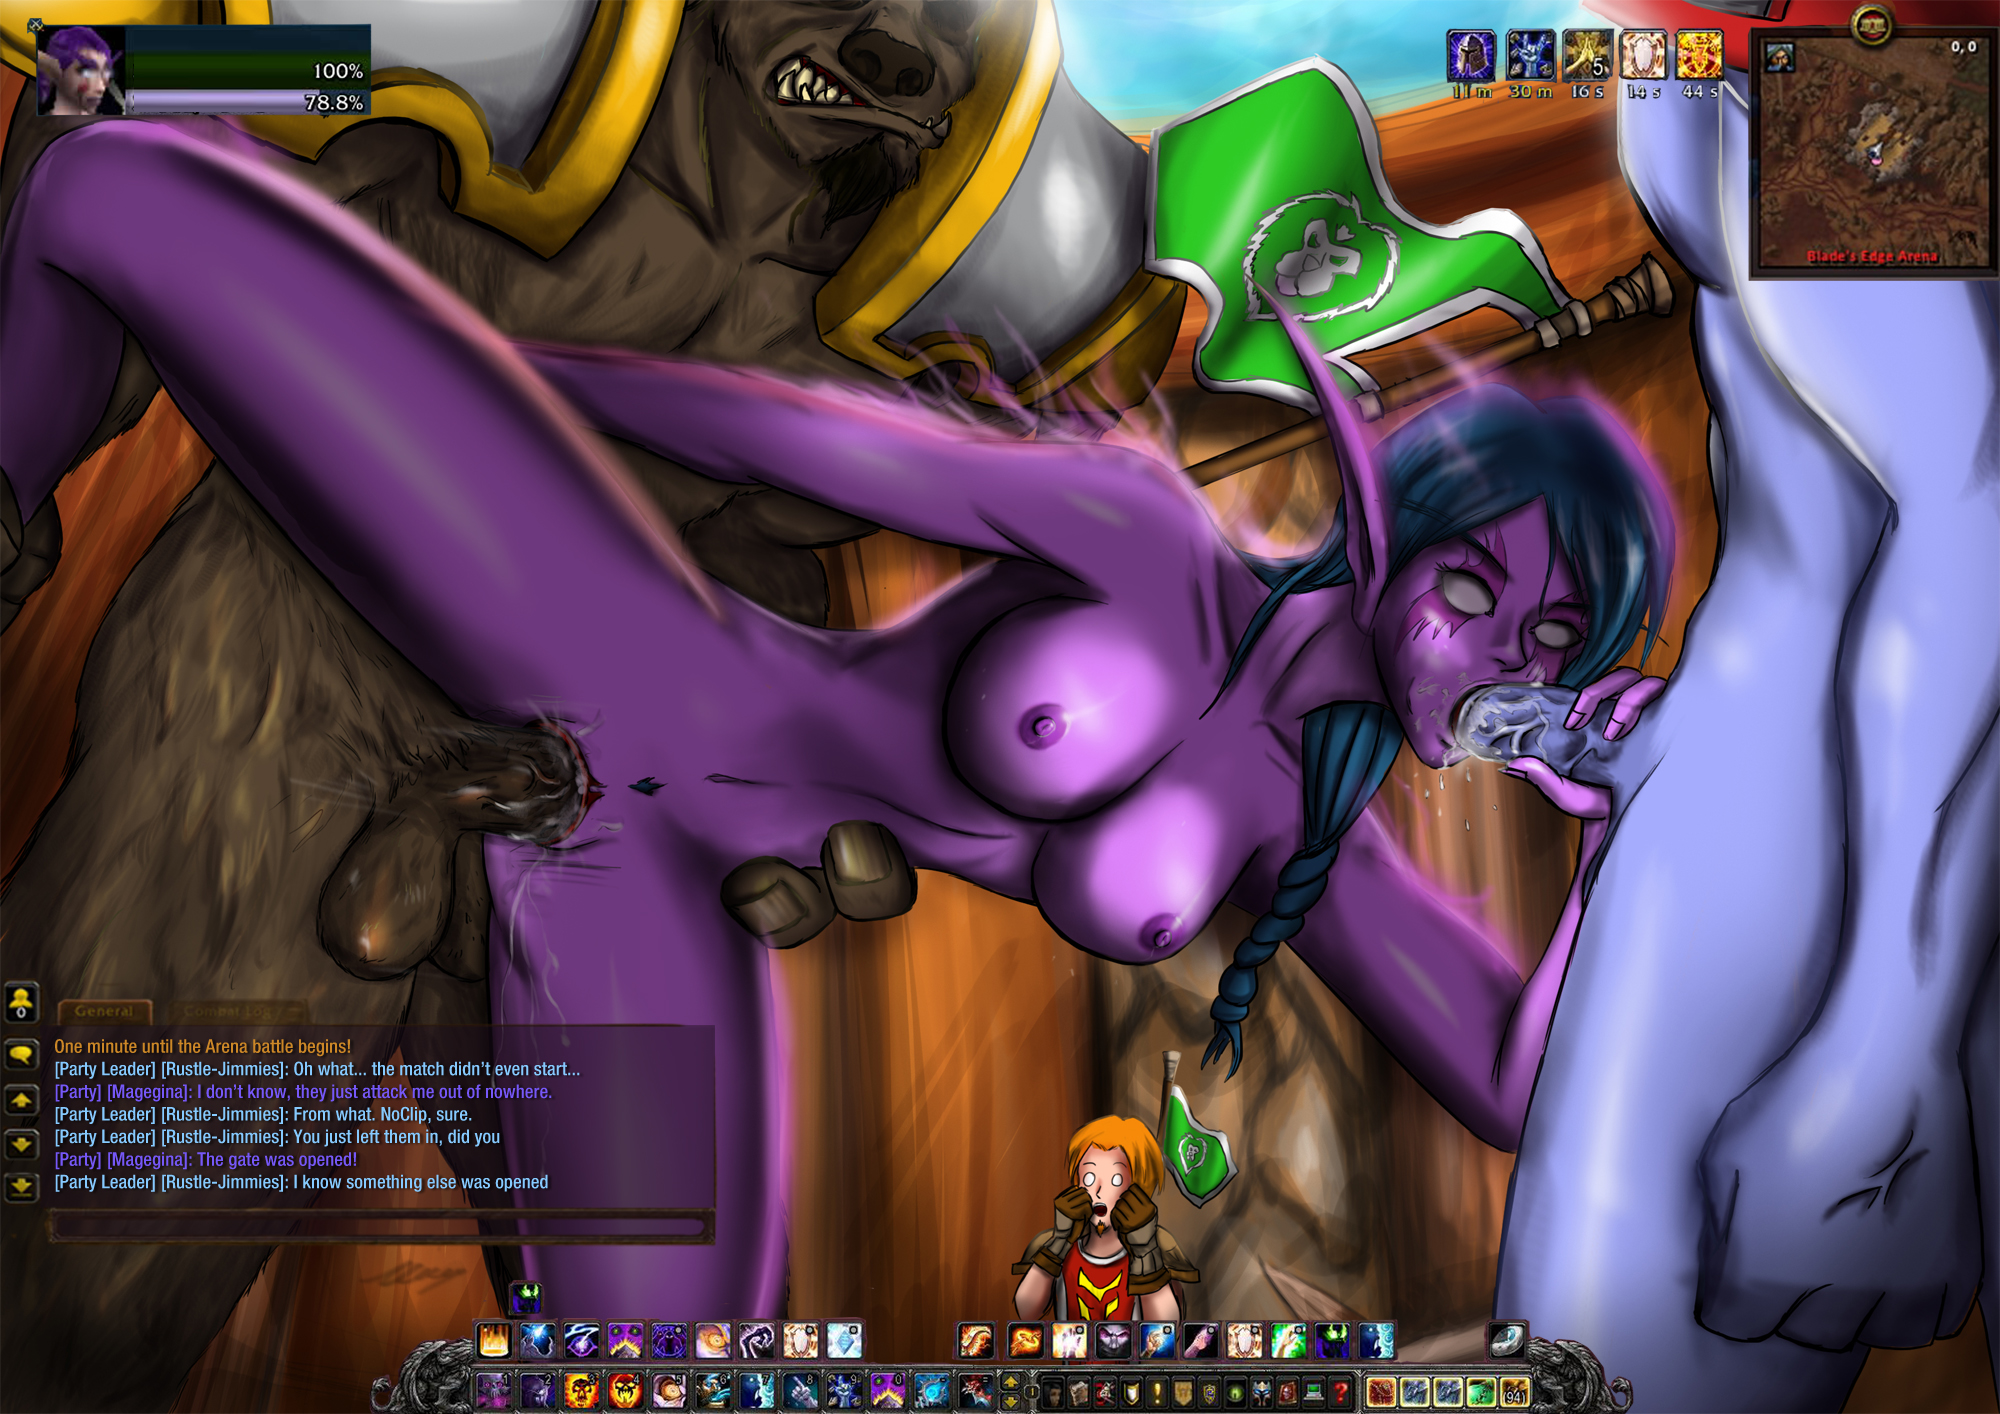 World of warcraft nightelf porn pics anime films